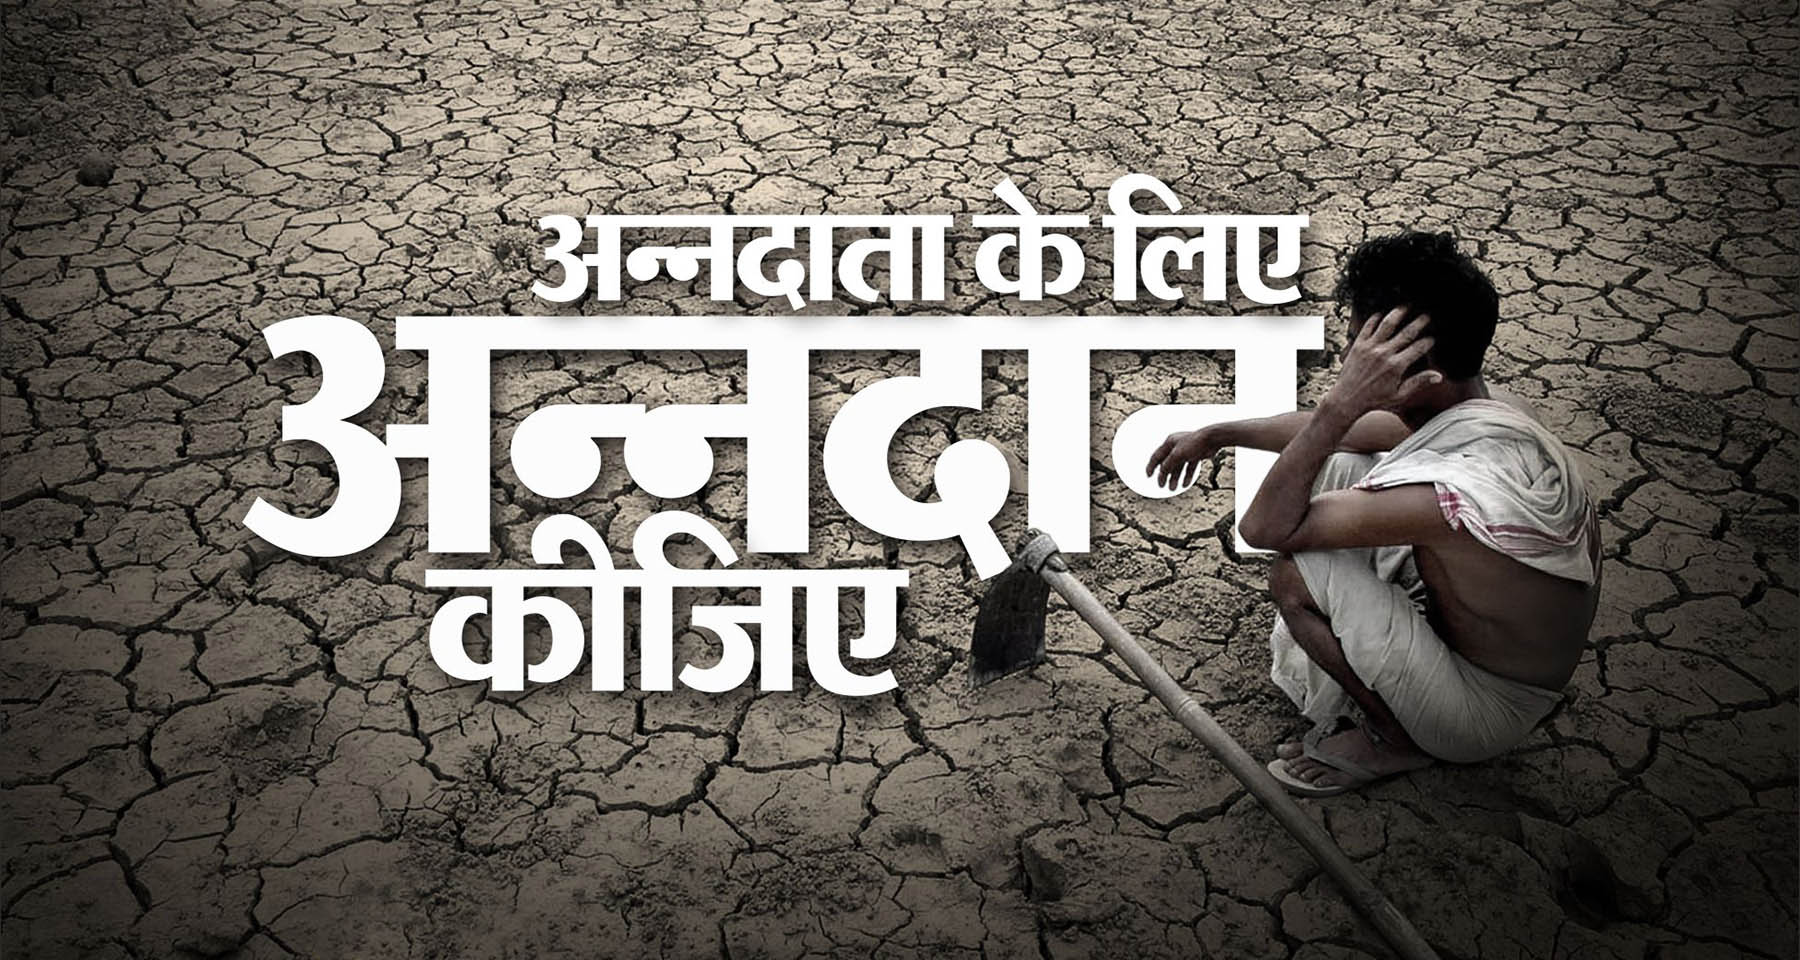 Dainik Bhaskar engages audience with print campaign to aid drought-stricken farmers